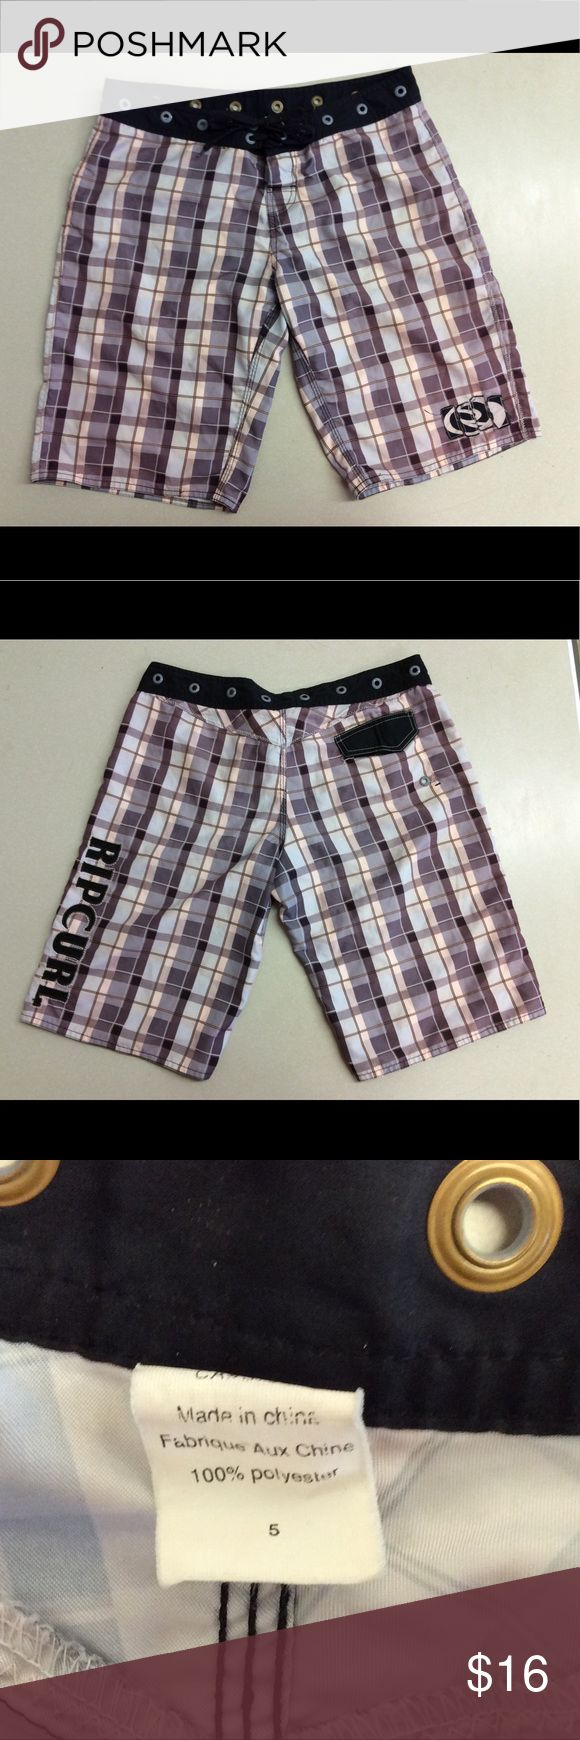 Rip Curl Boardshorts Rip Curl Boardshorts   14 rivets that go around the waistband. It is a cool look.   Size - 5   Color - Brown Rip Curl Shorts Bermudas